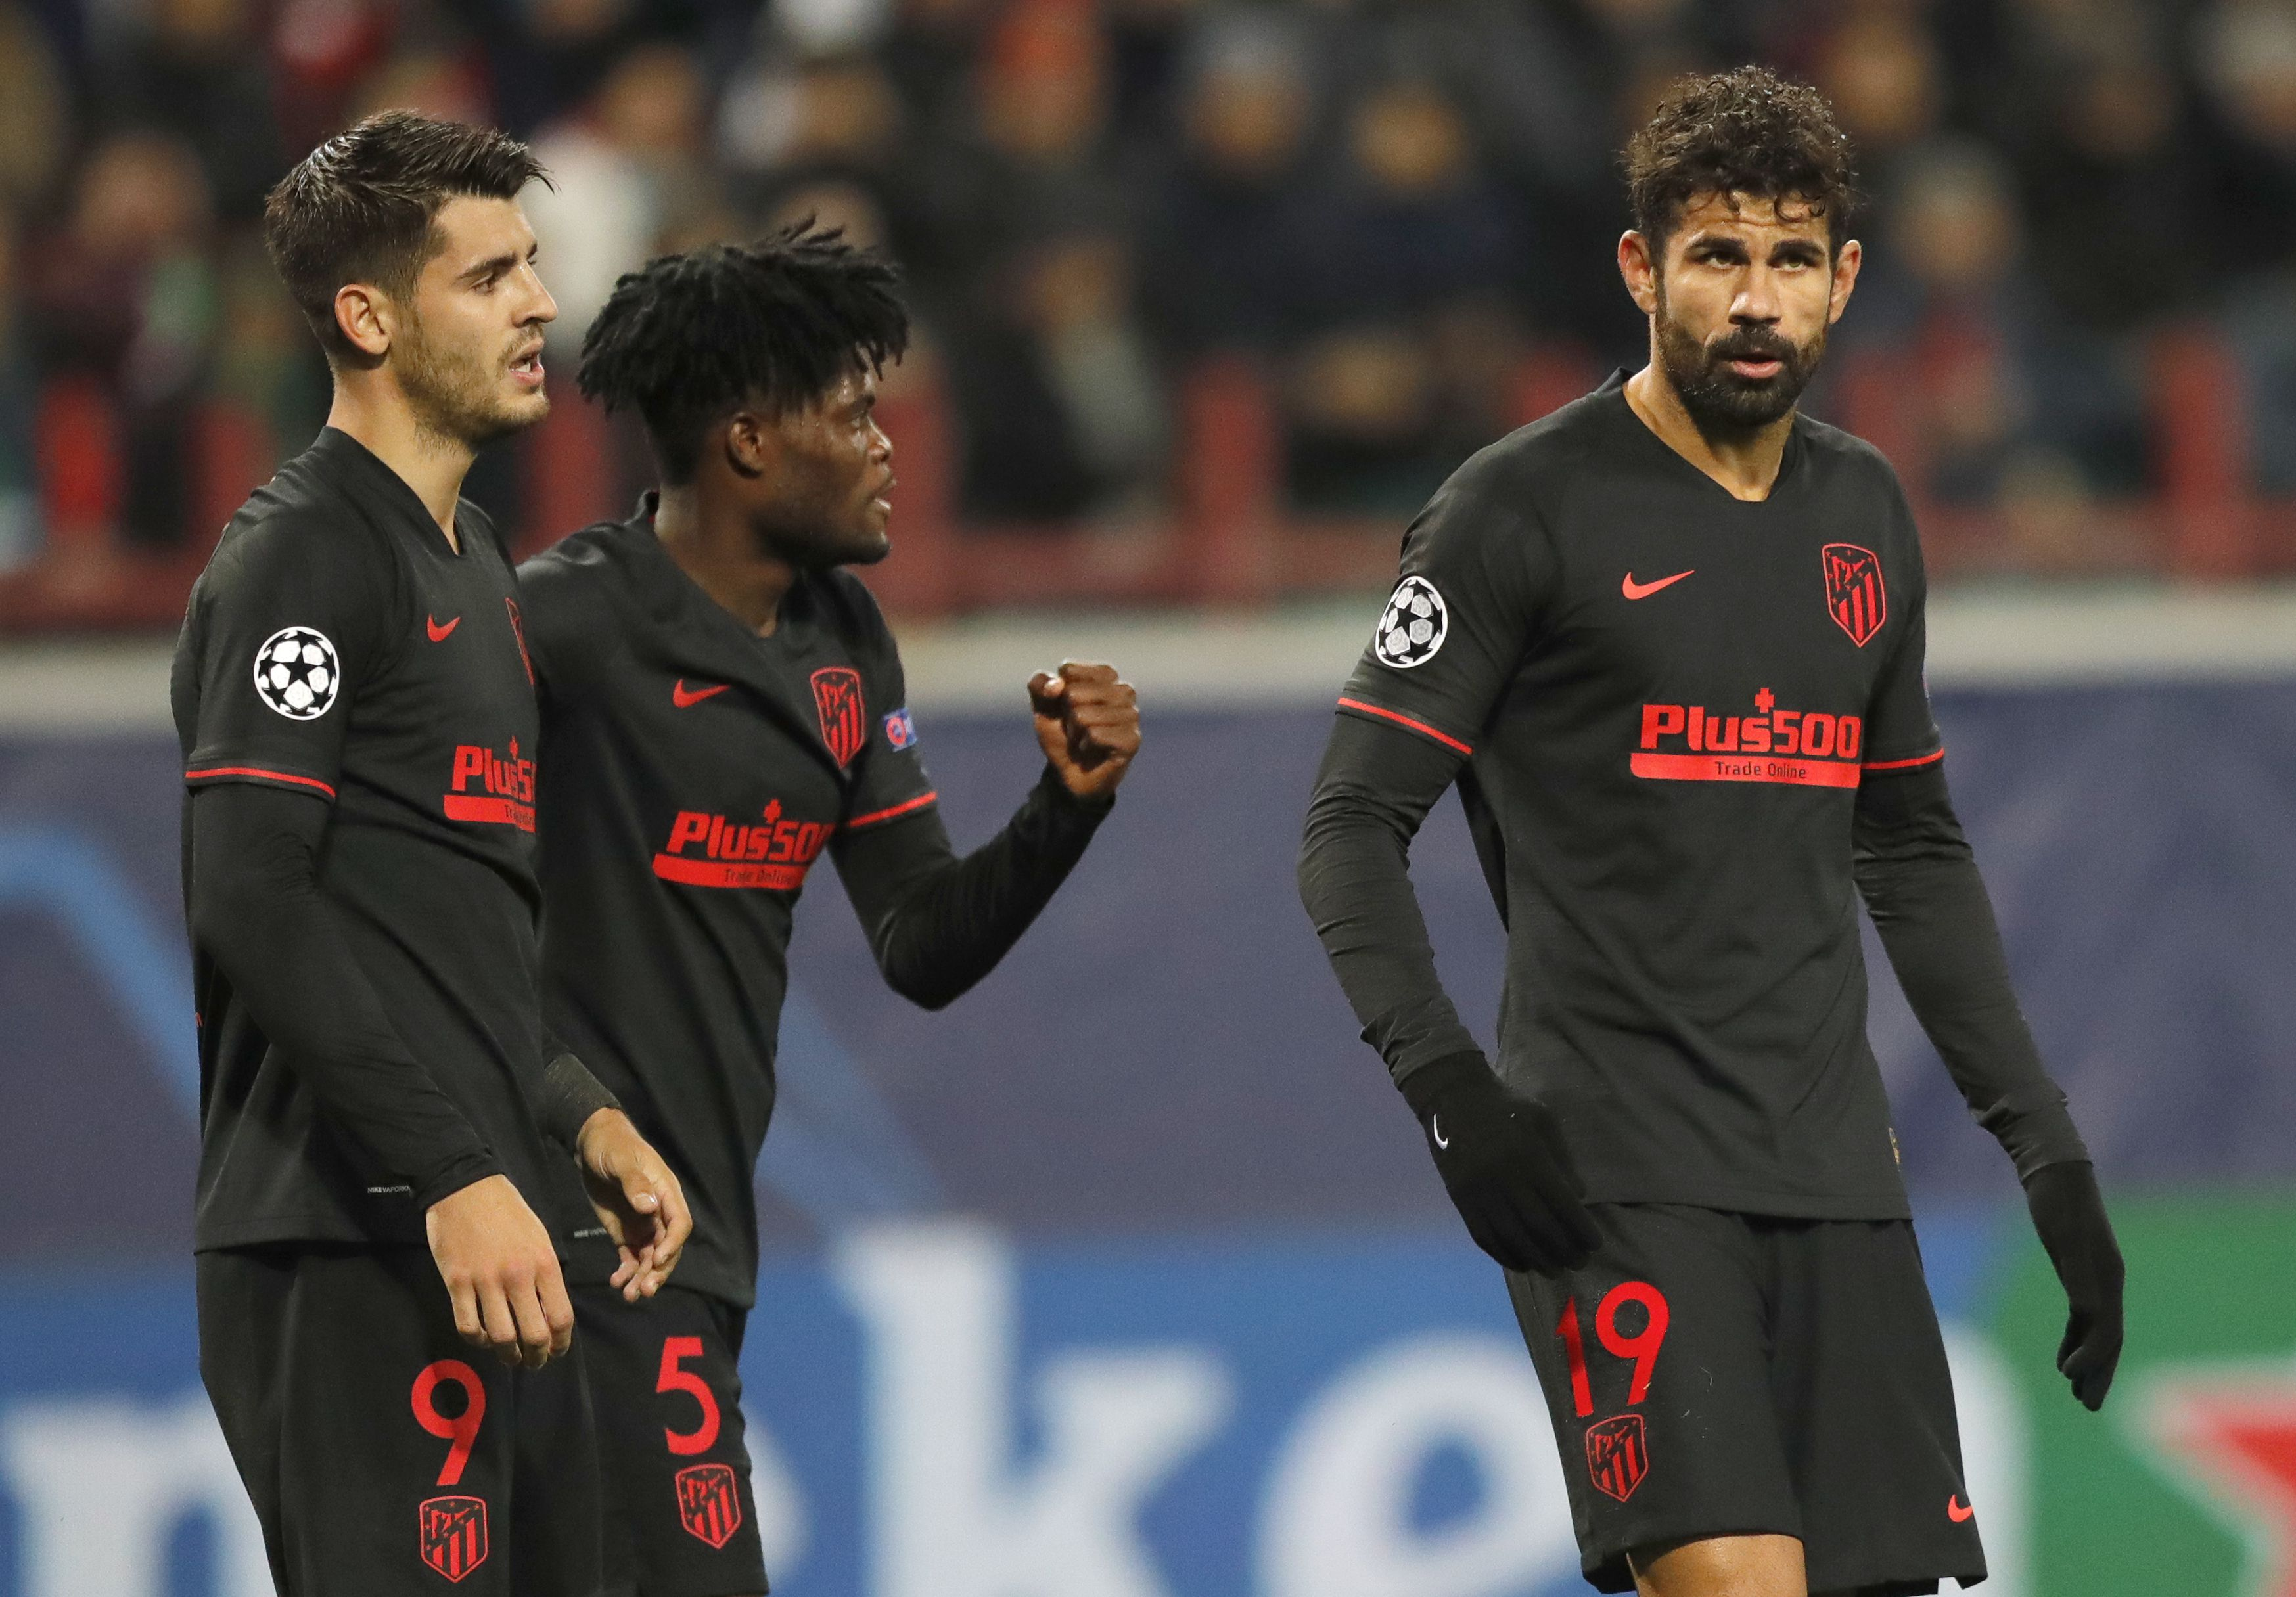 Atletico Madrid Vs Bayer Leverkusen Free Live Stream 10 22 19 How To Watch Uefa Champions League Online Time Usa Tv Channel Nj Com